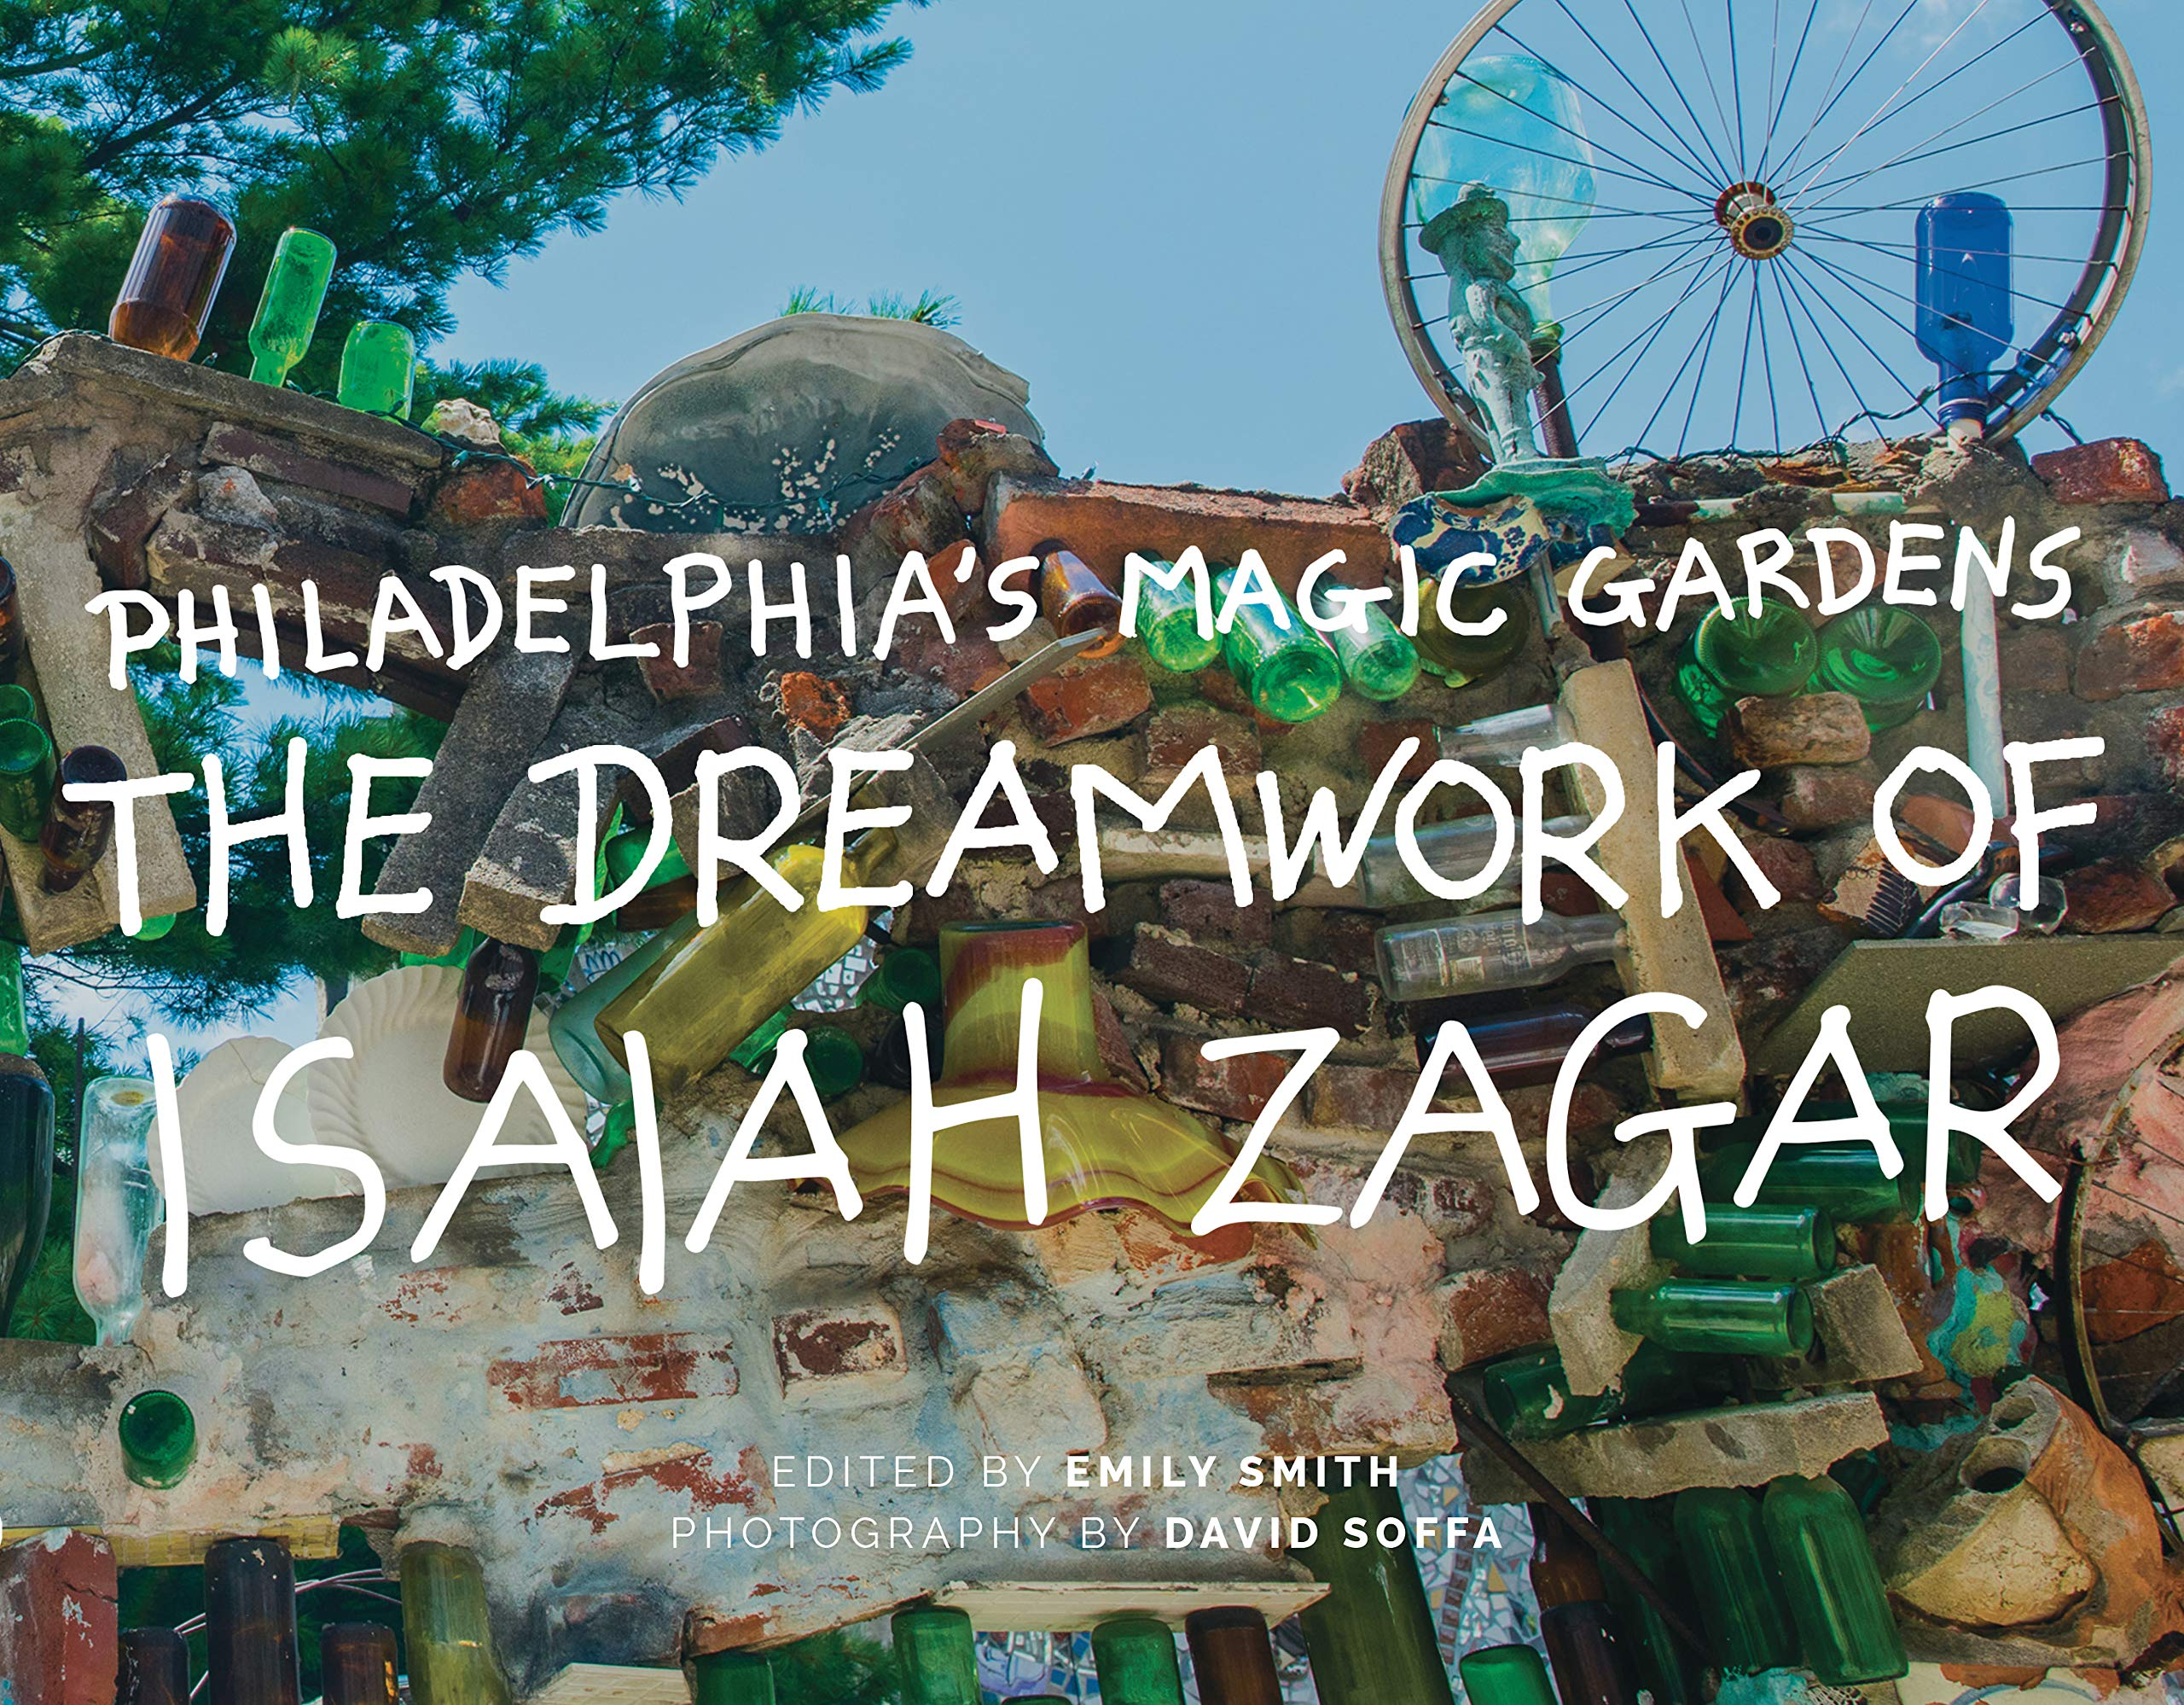 Philadelphia S Magic Gardens The Dreamwork Of Isaiah Zagar